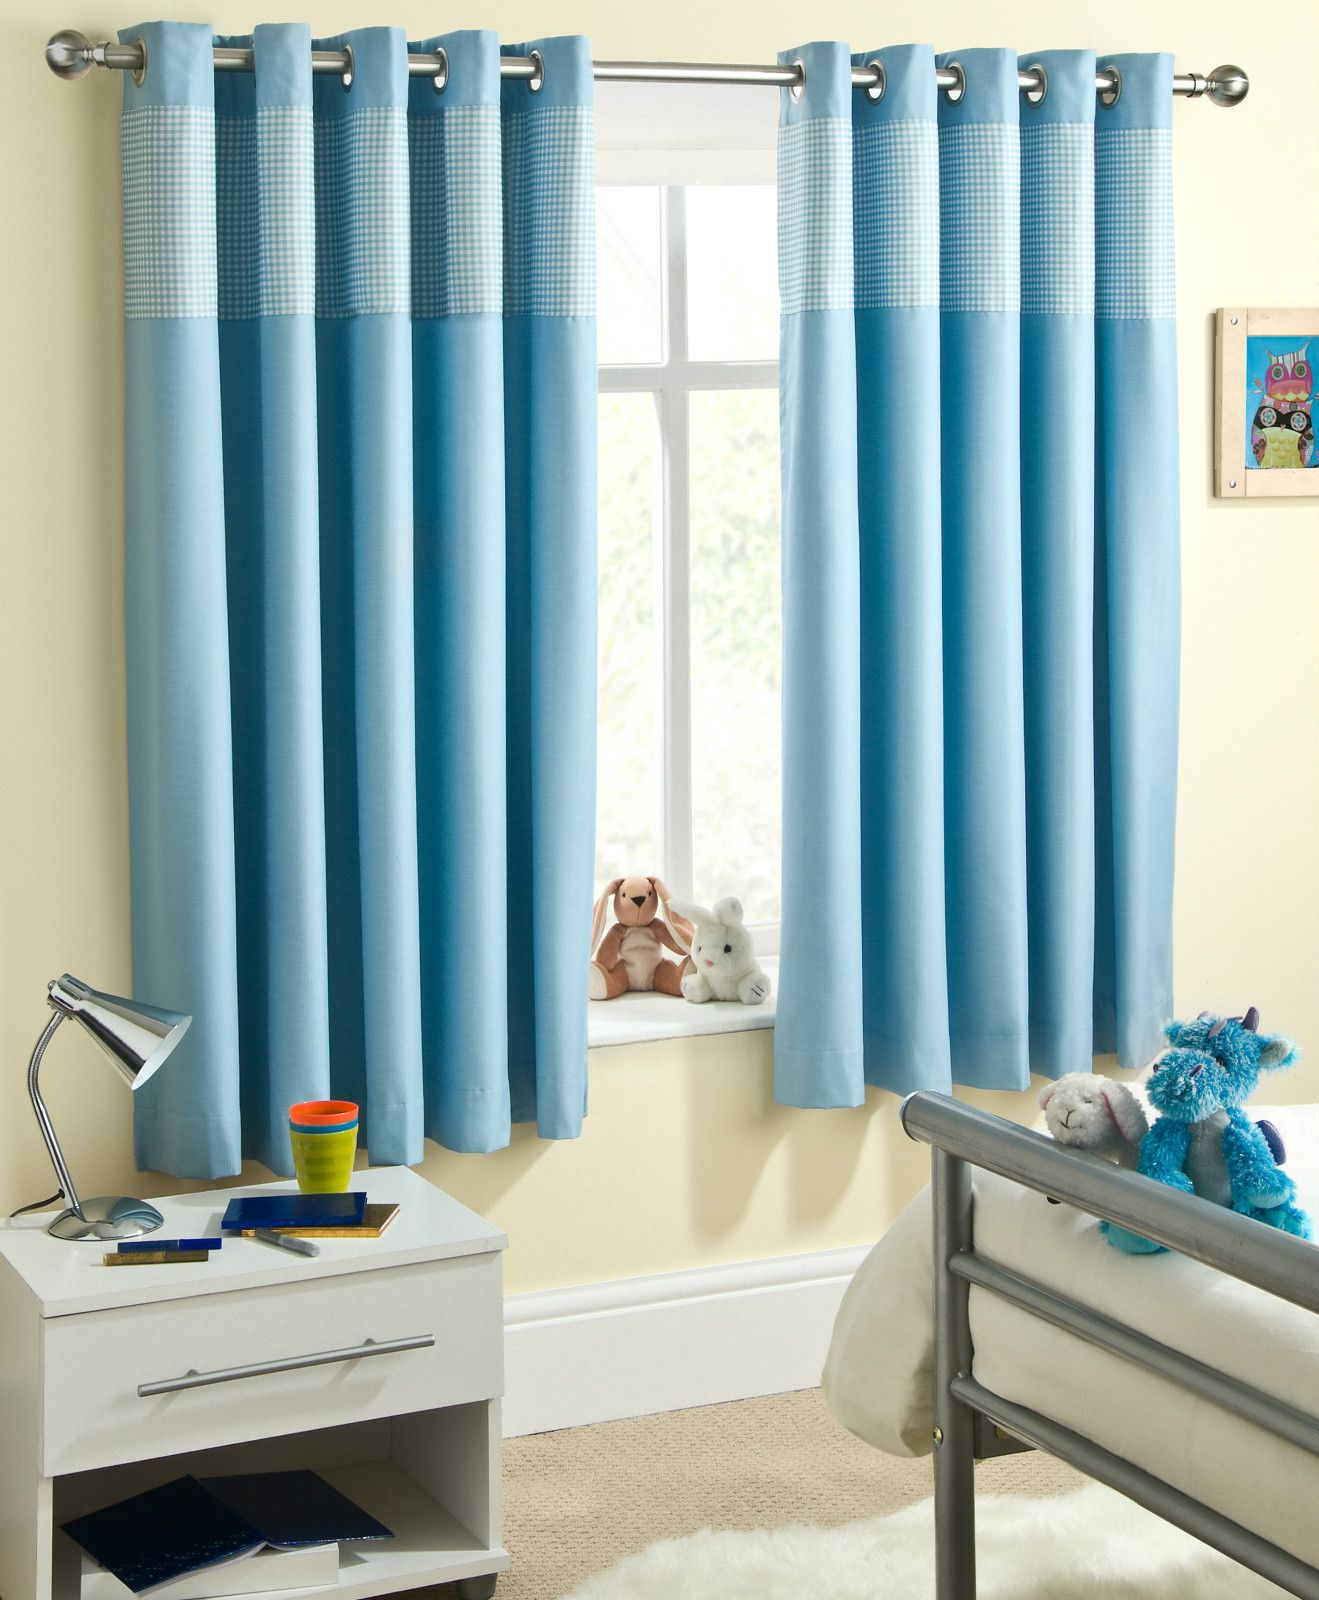 Baby Nursery Curtains Just An Image I Like These Boys Room